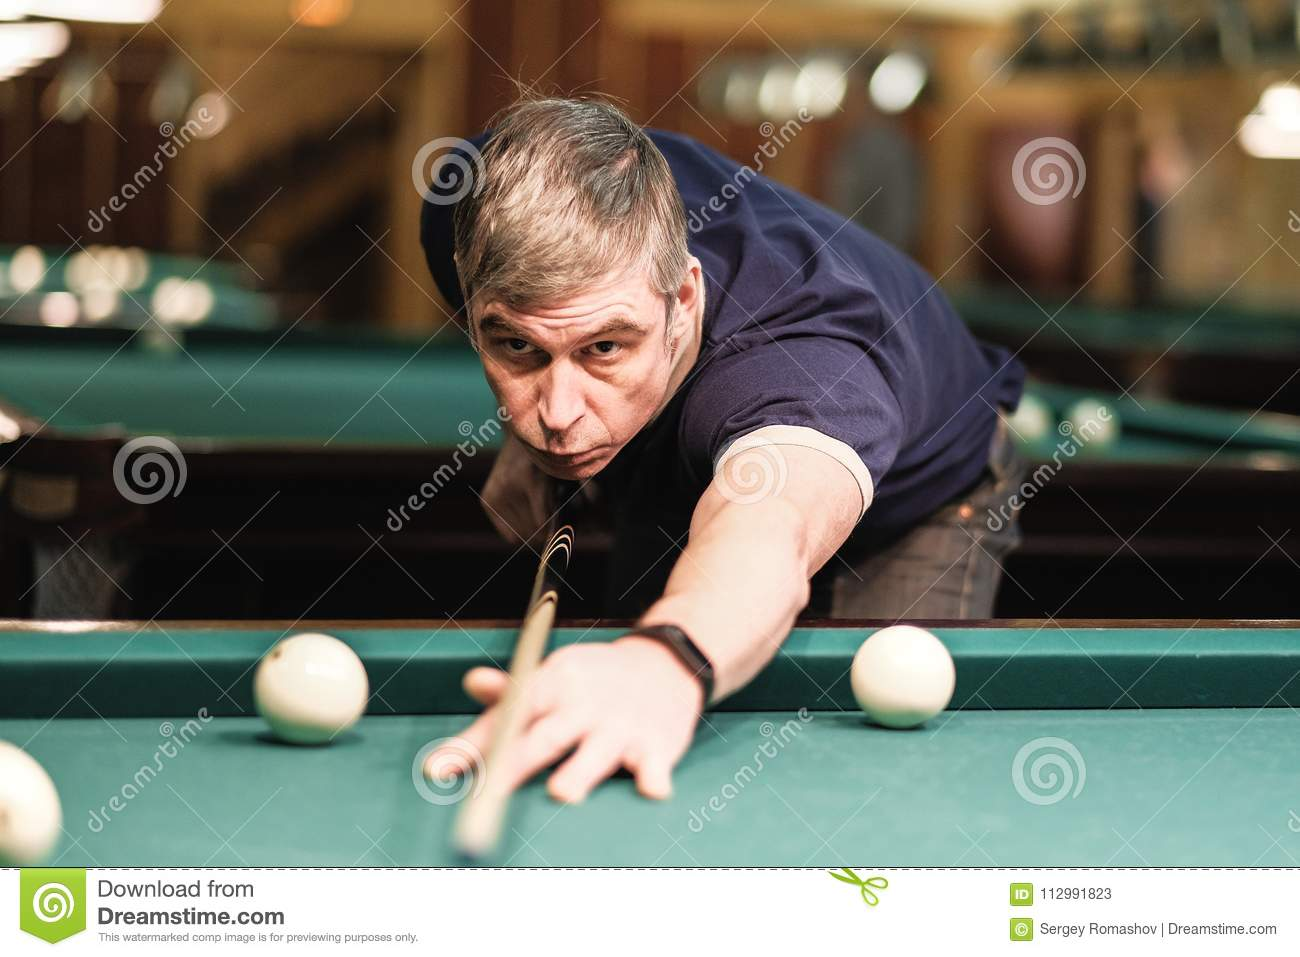 A pool player takes aim at the ball